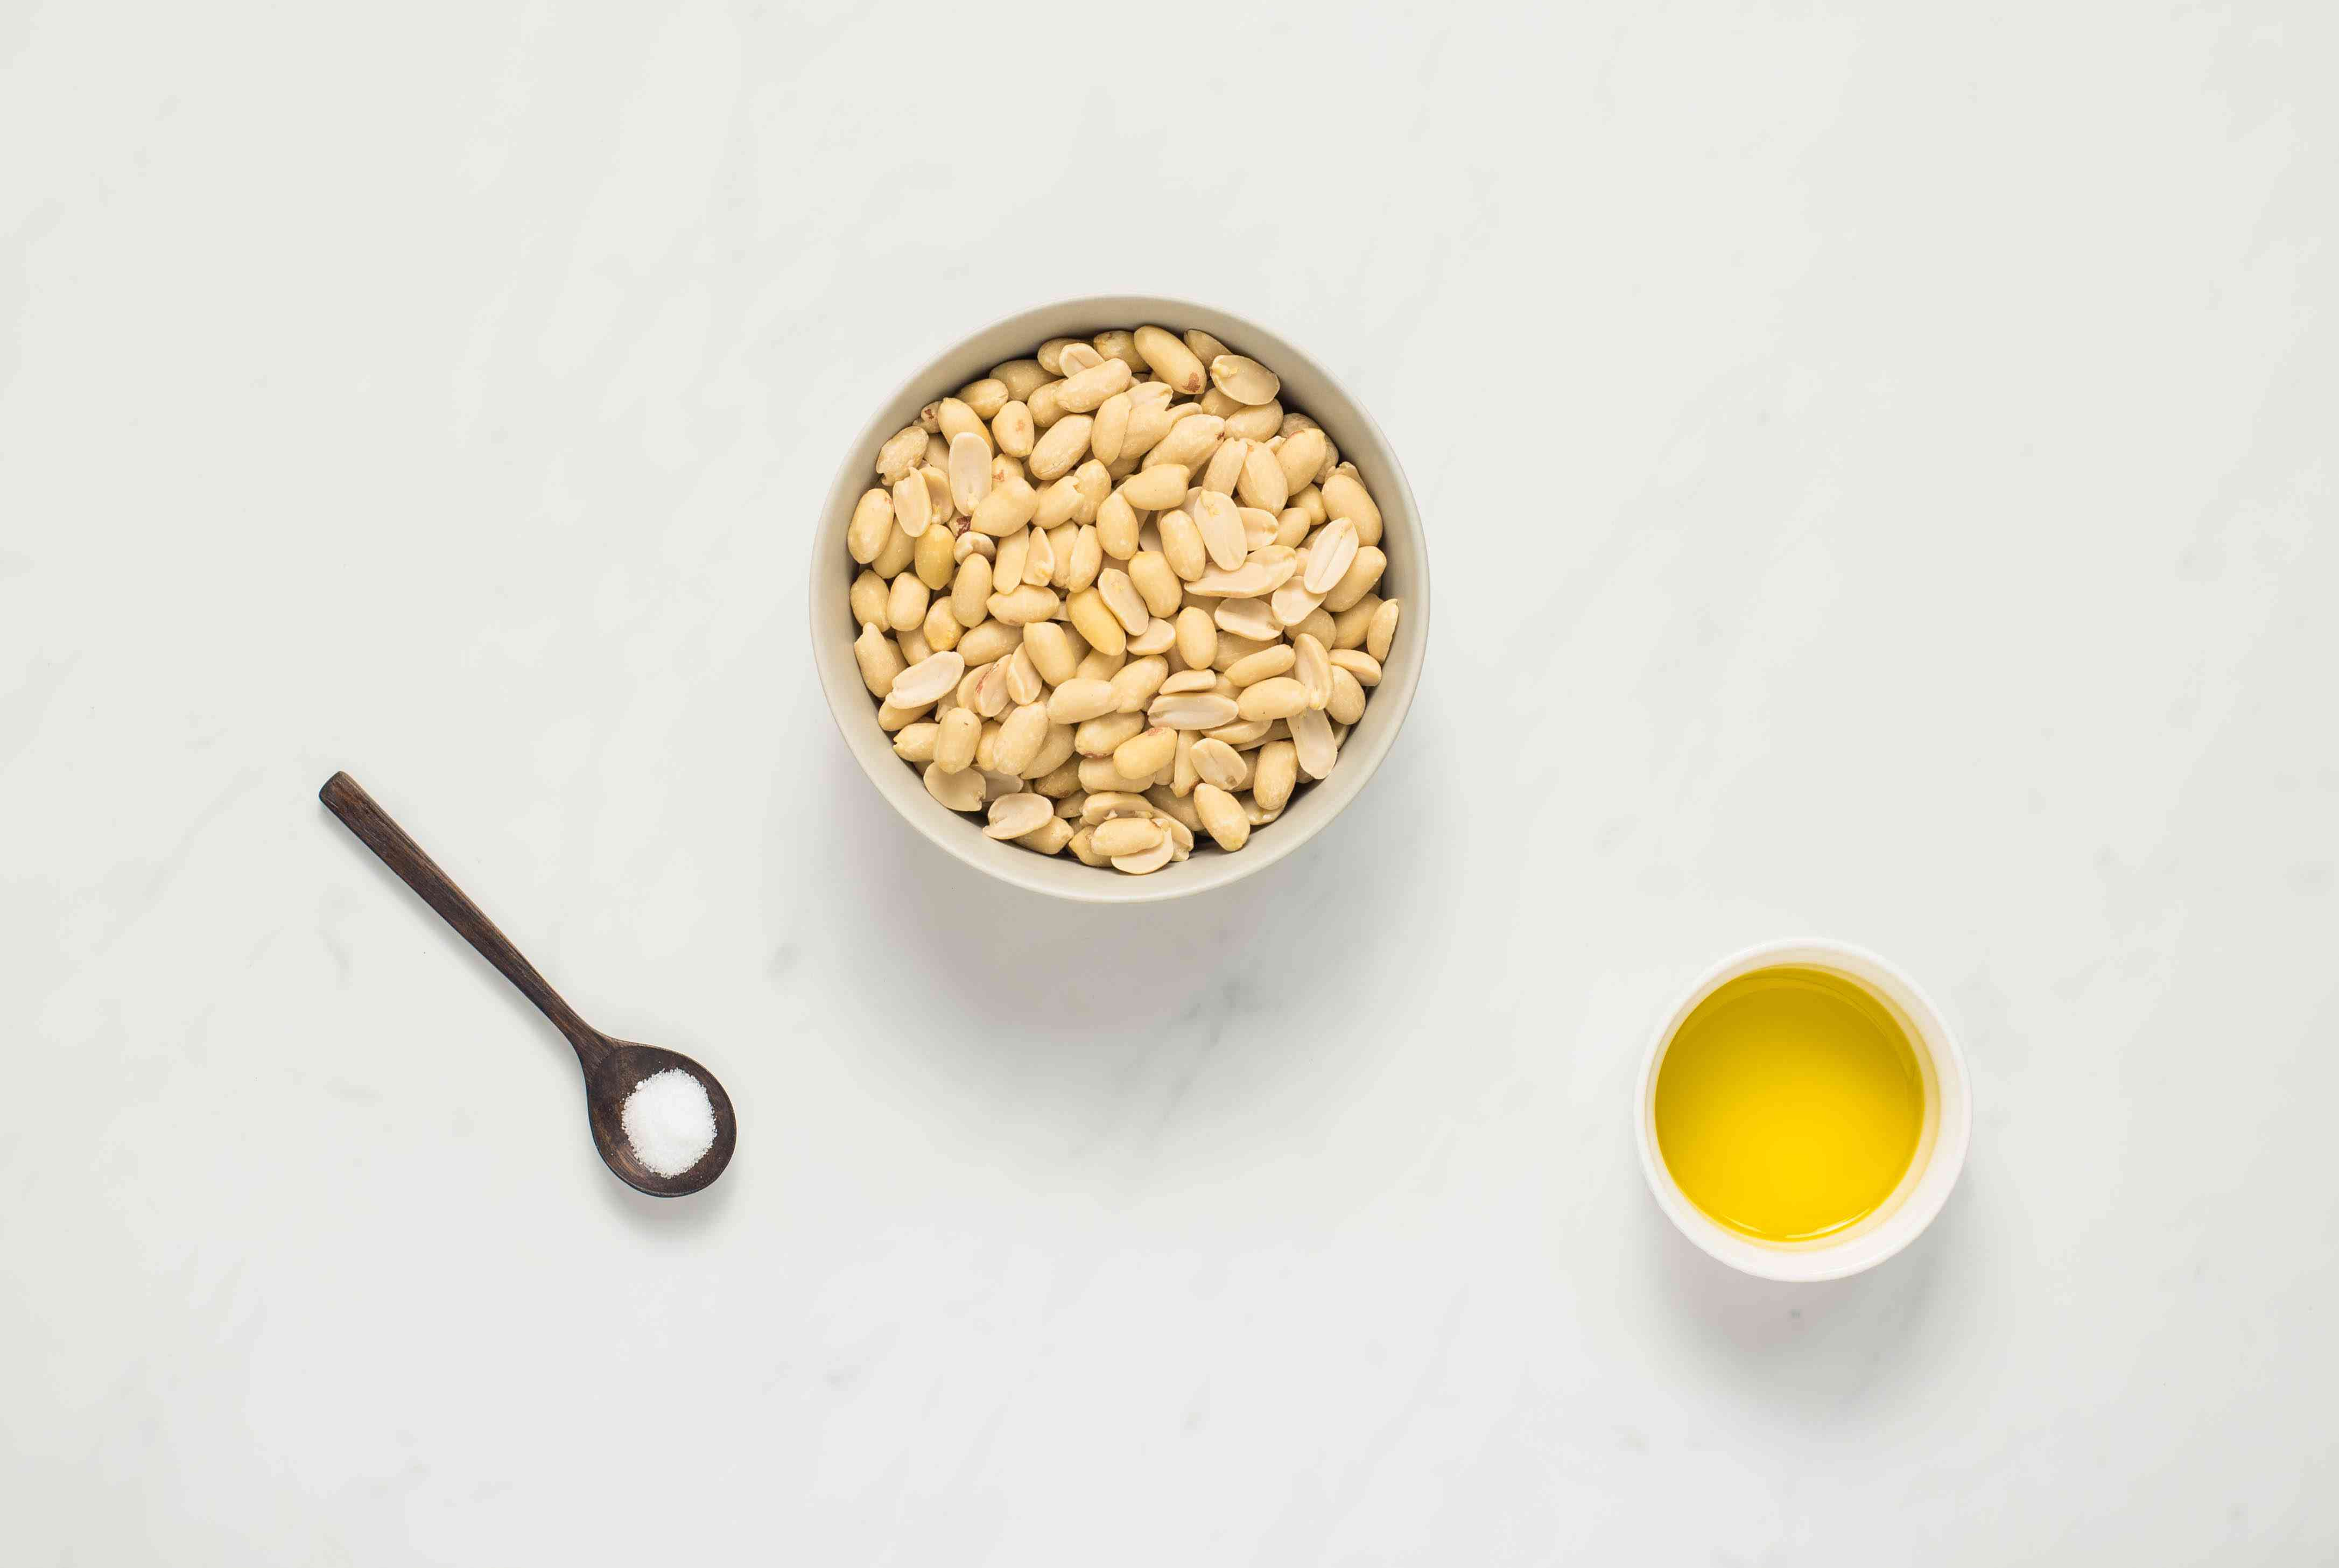 Ingredients for peanut butter